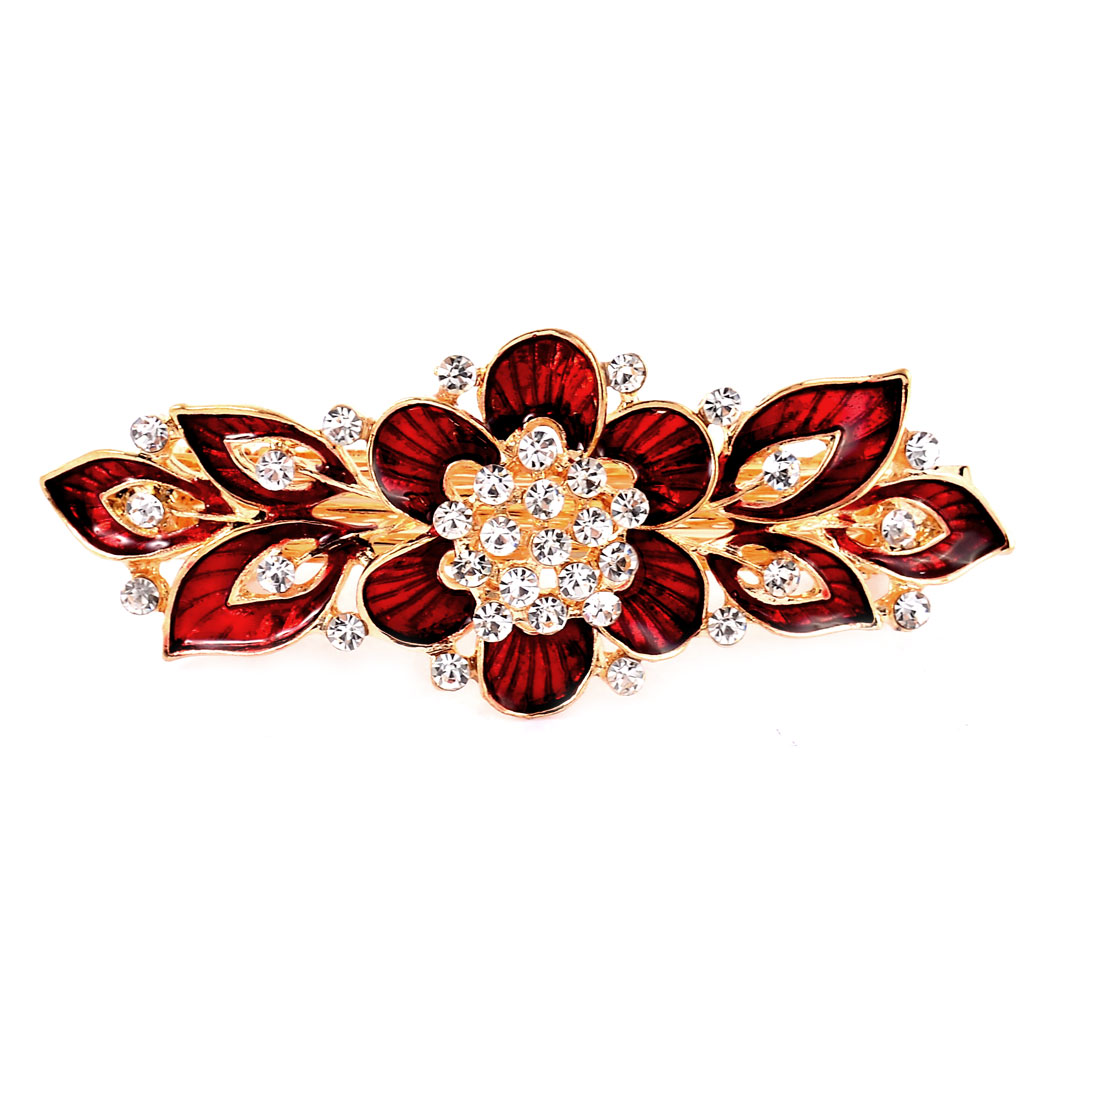 Lady Floral Design Faux Crystal Inlaid French Hair Barrette Clip Hairpin Red